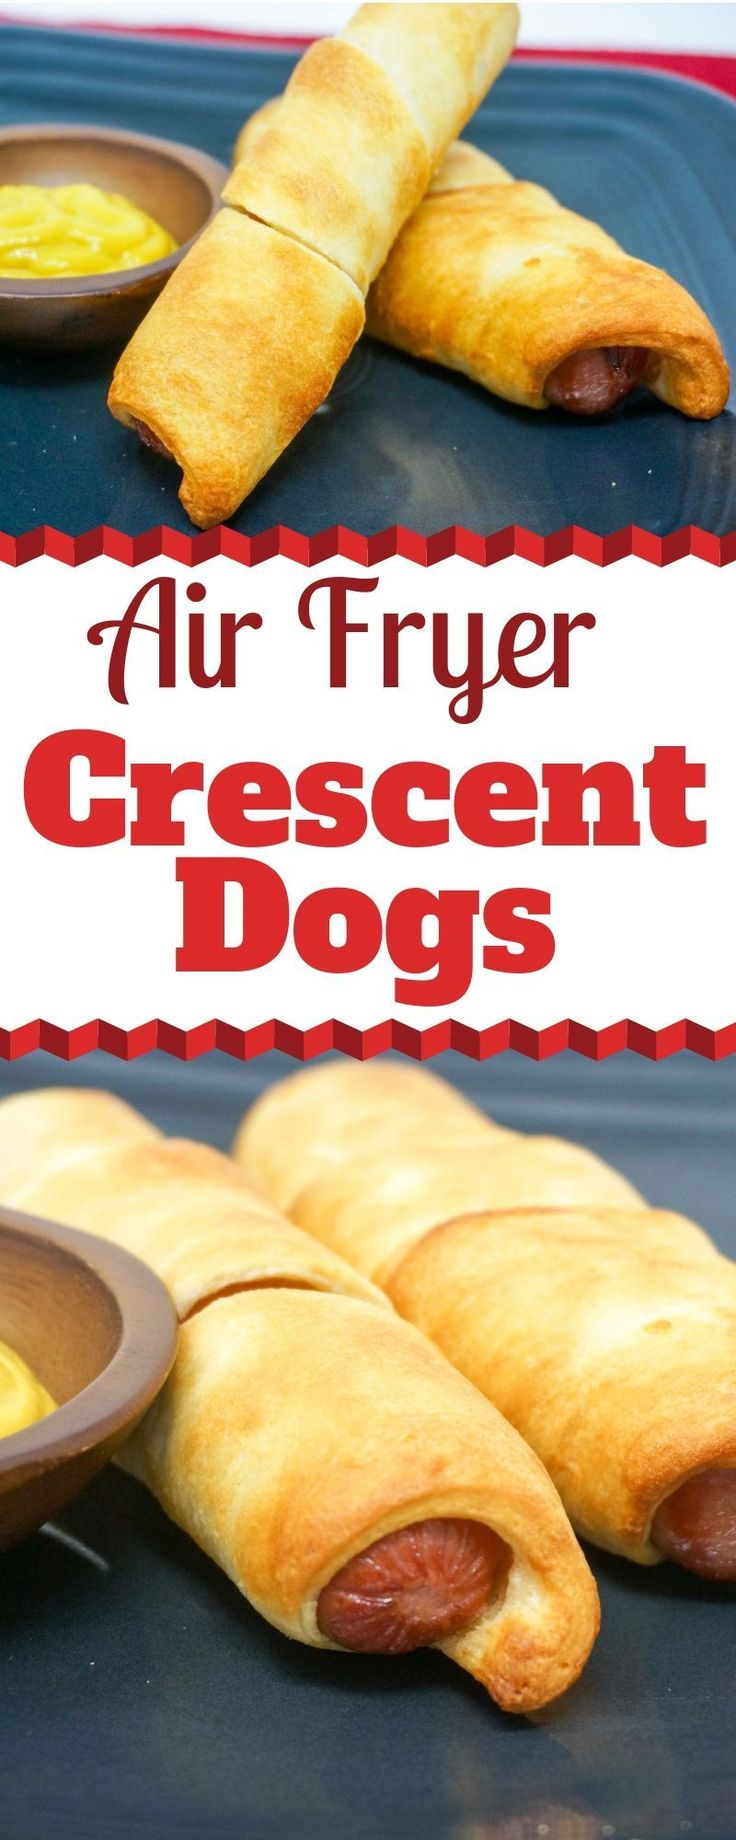 Air Fryer Crescent Dogs Recipe Air fryer dinner